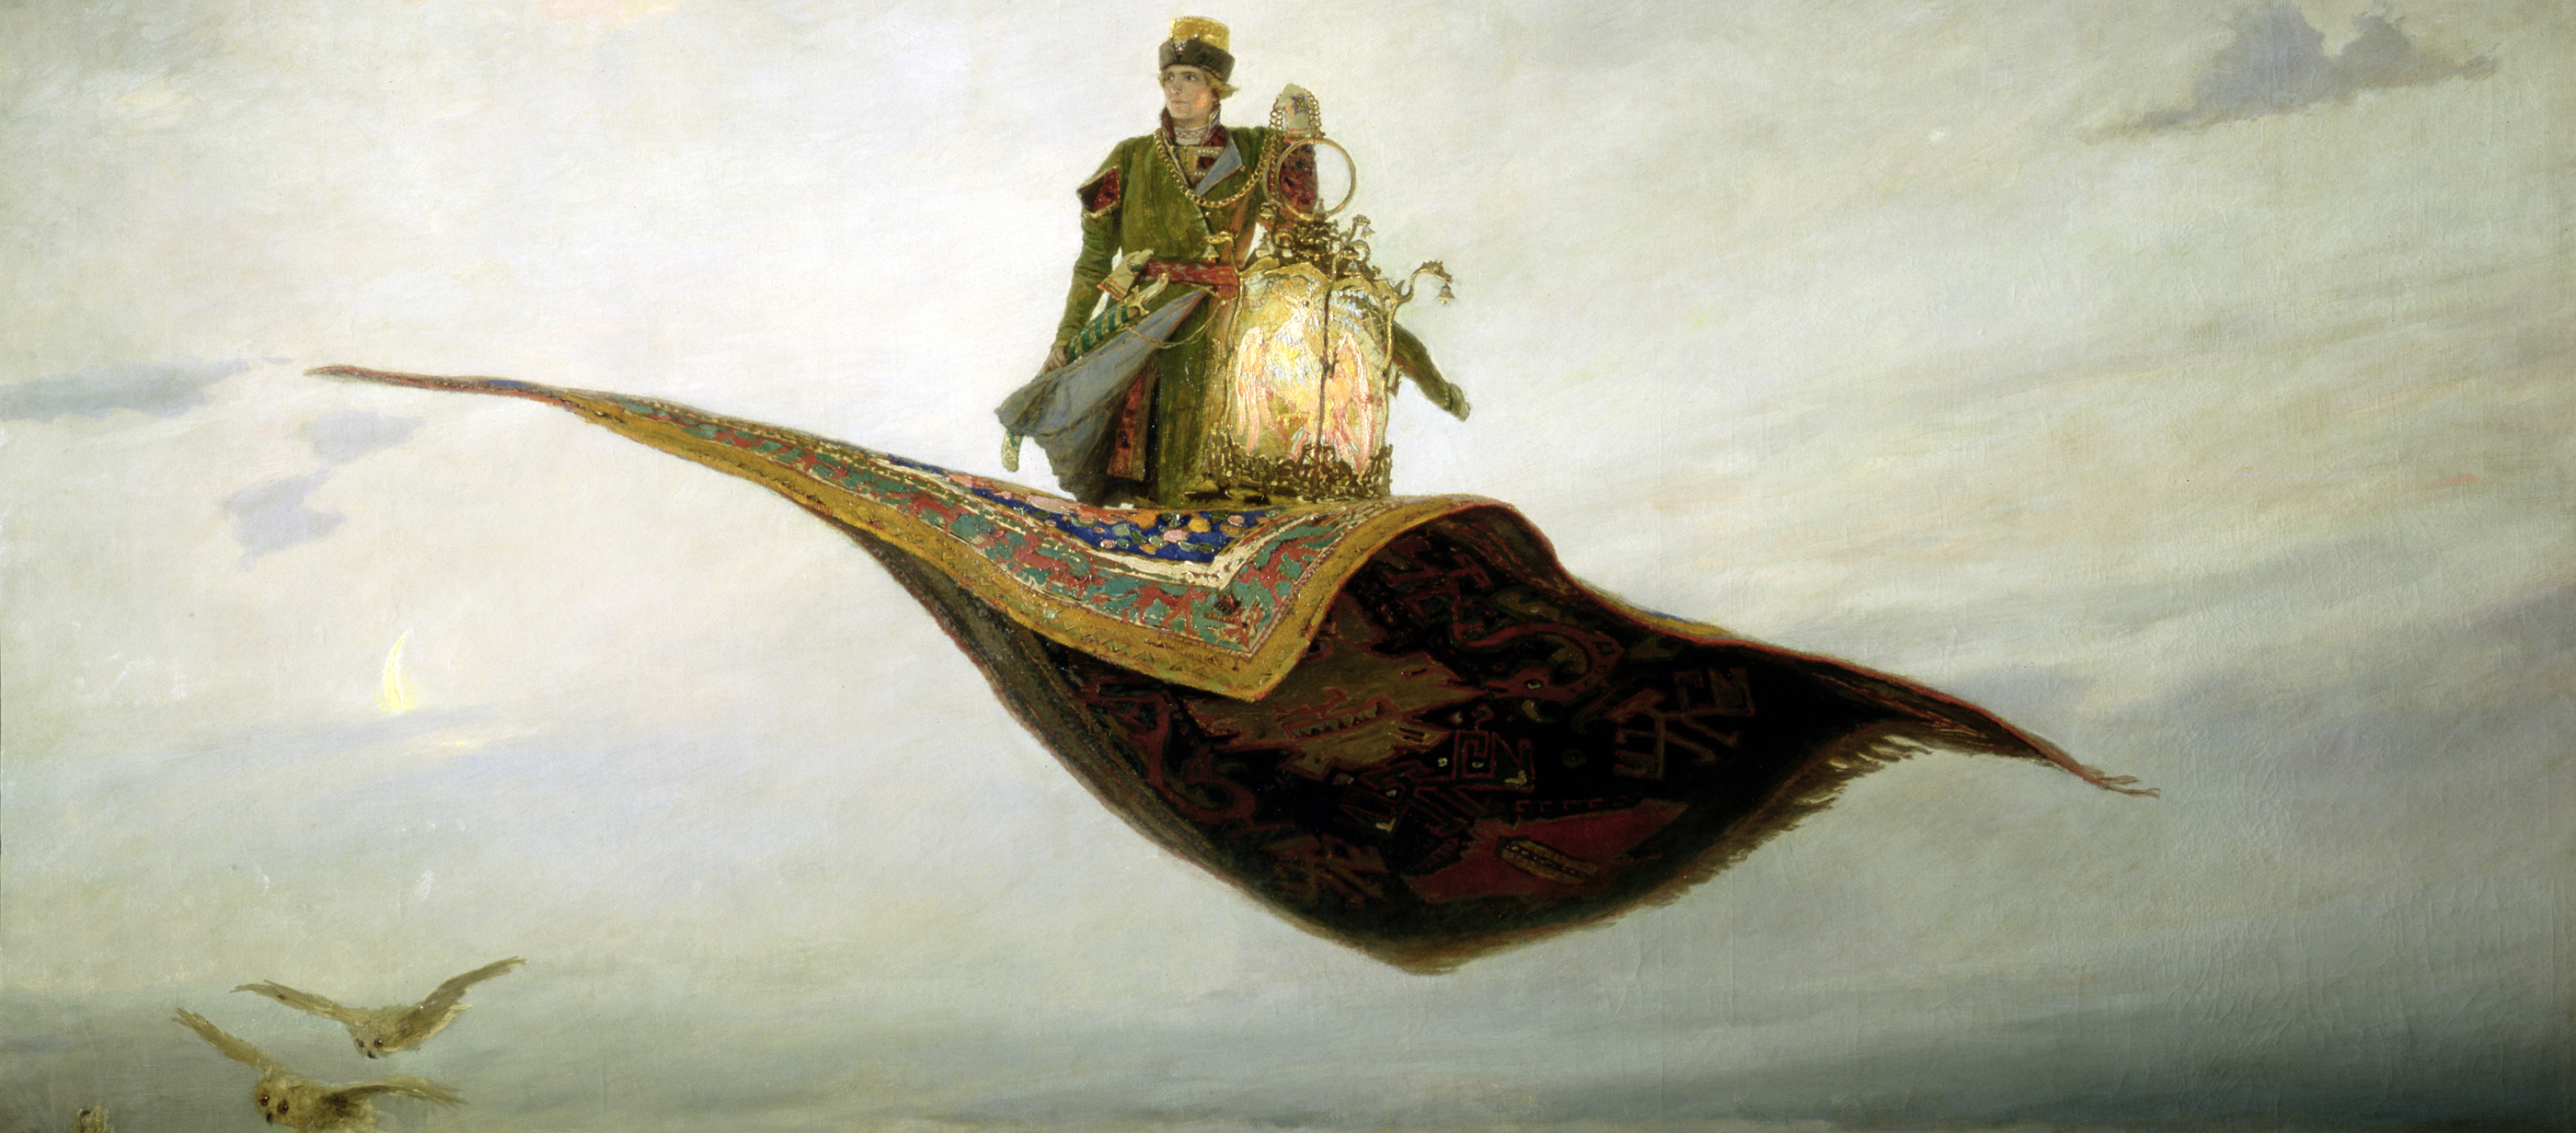 The Magic Carpet, by Viktor Vasnetsov, 1880.